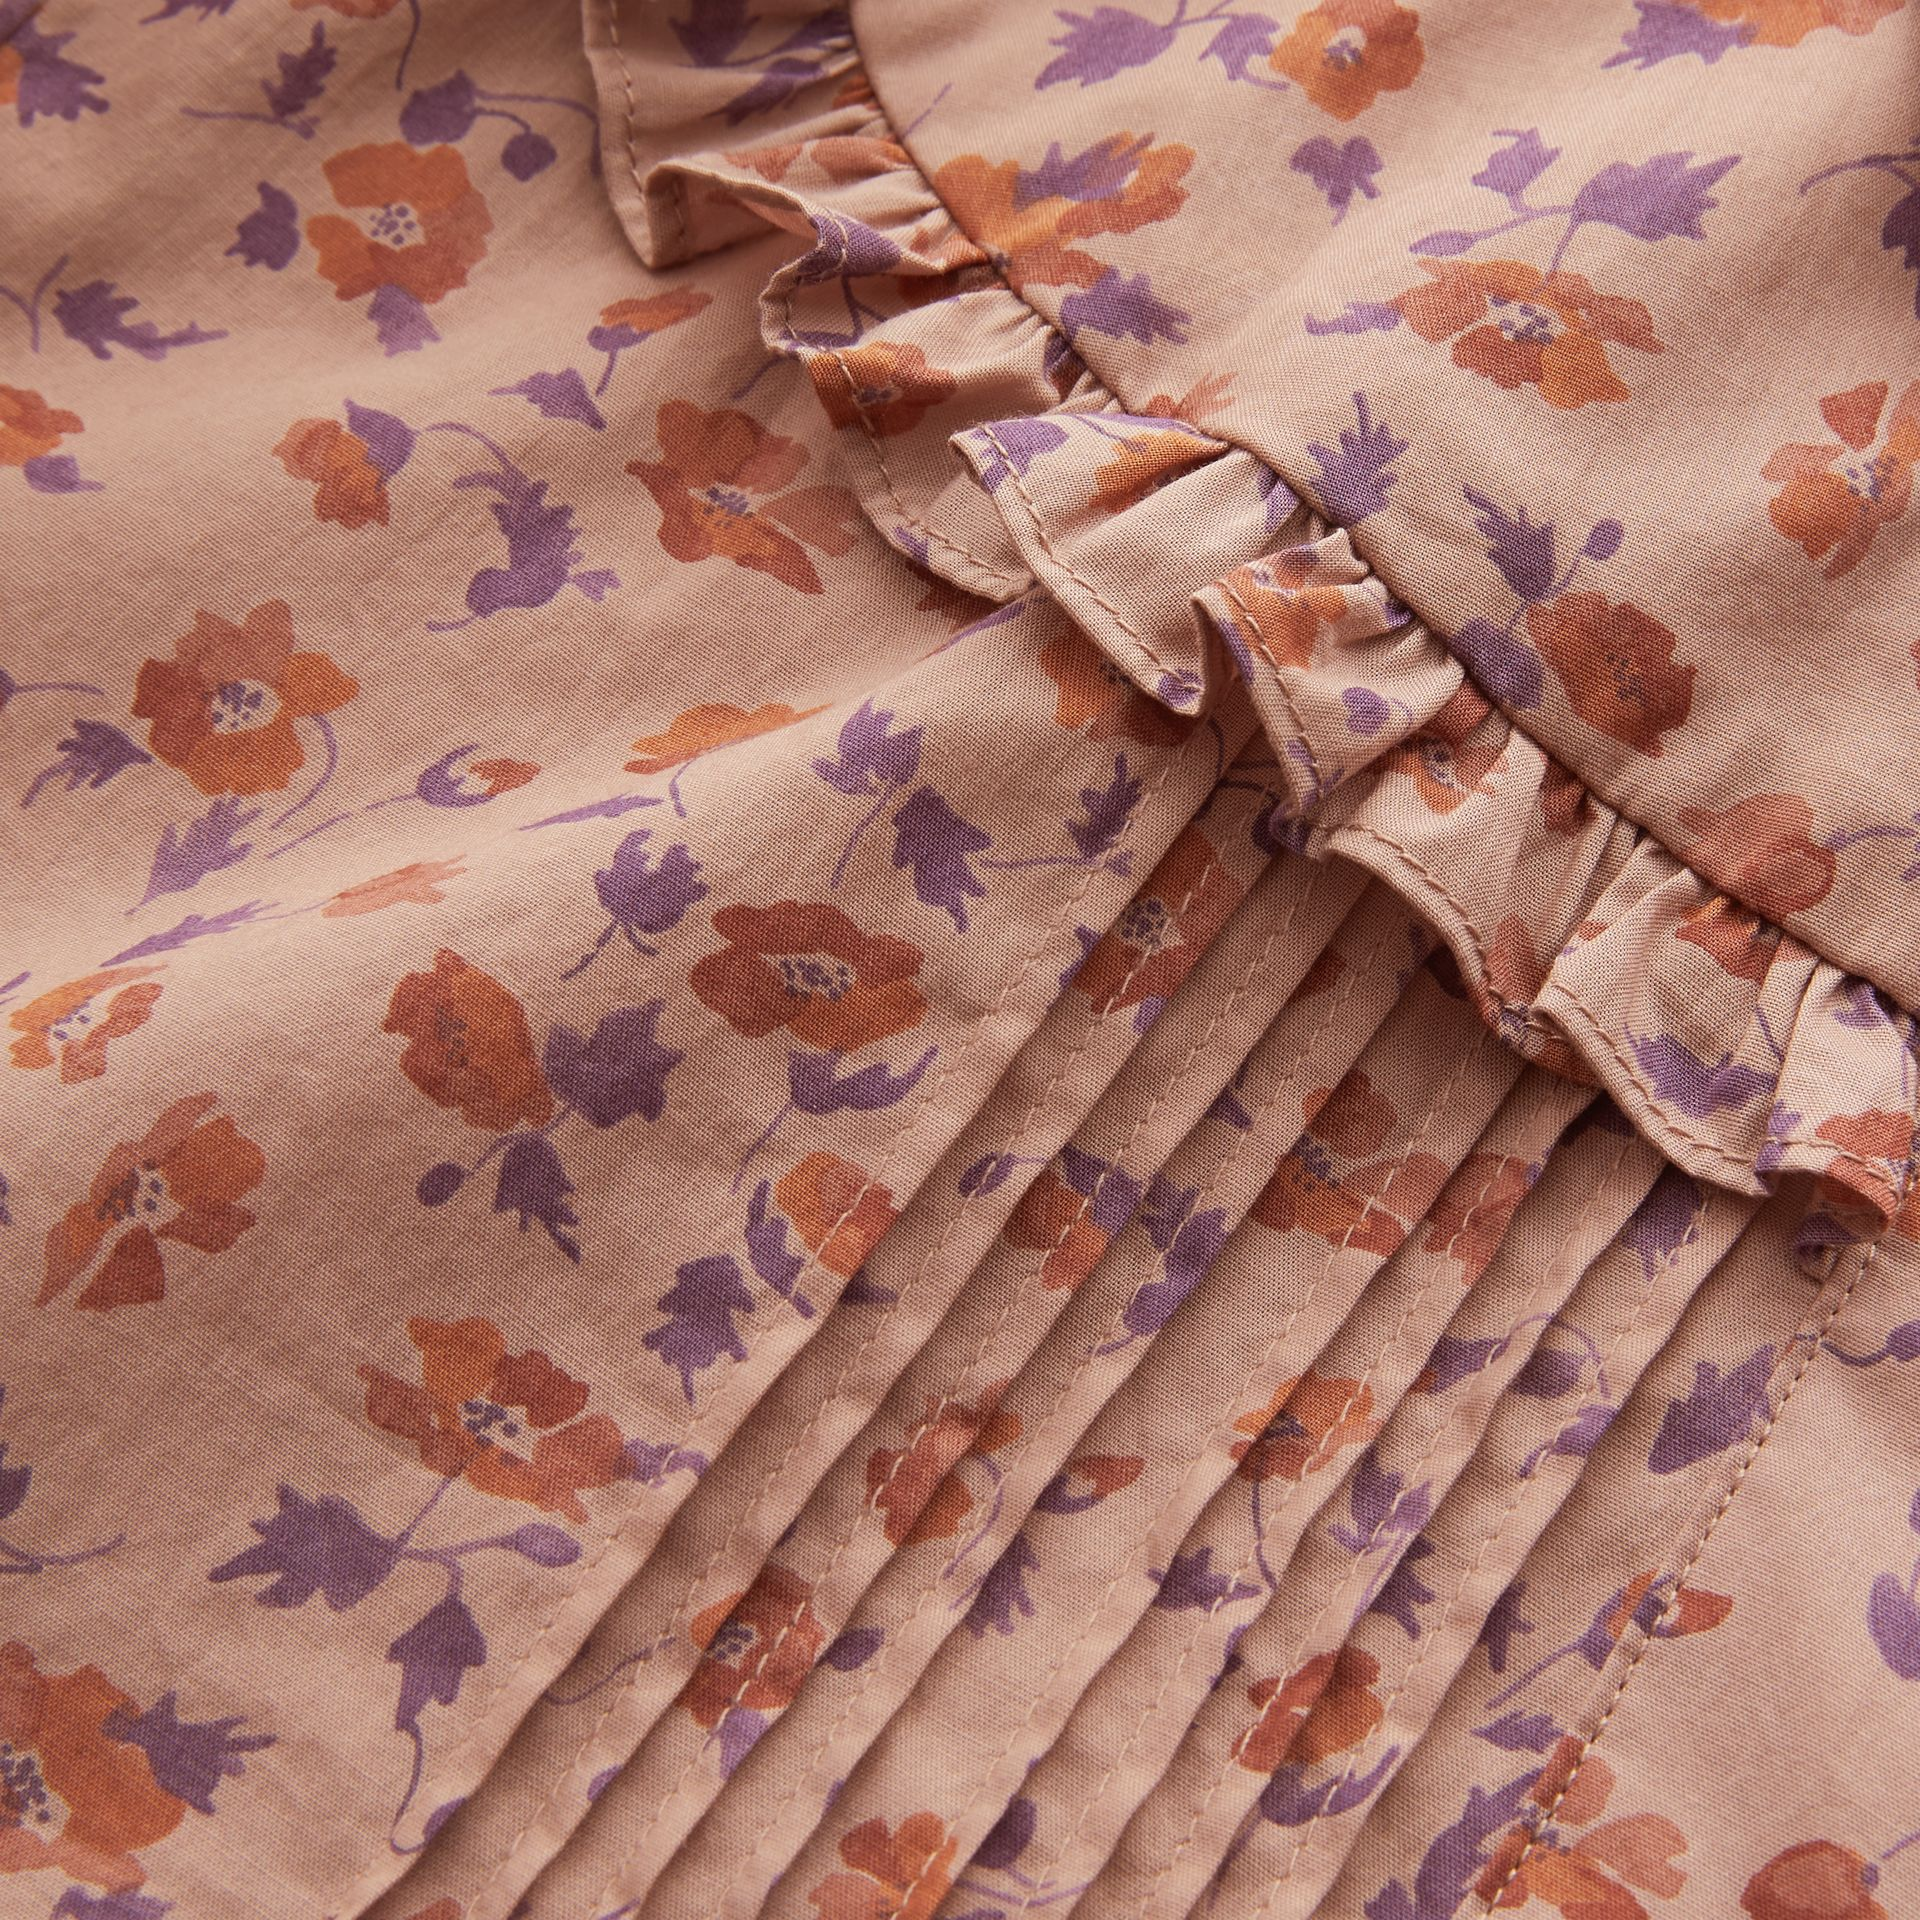 Ruffle Yoke Floral Print Cotton Shirt in Light Copper - Women | Burberry Singapore - gallery image 2